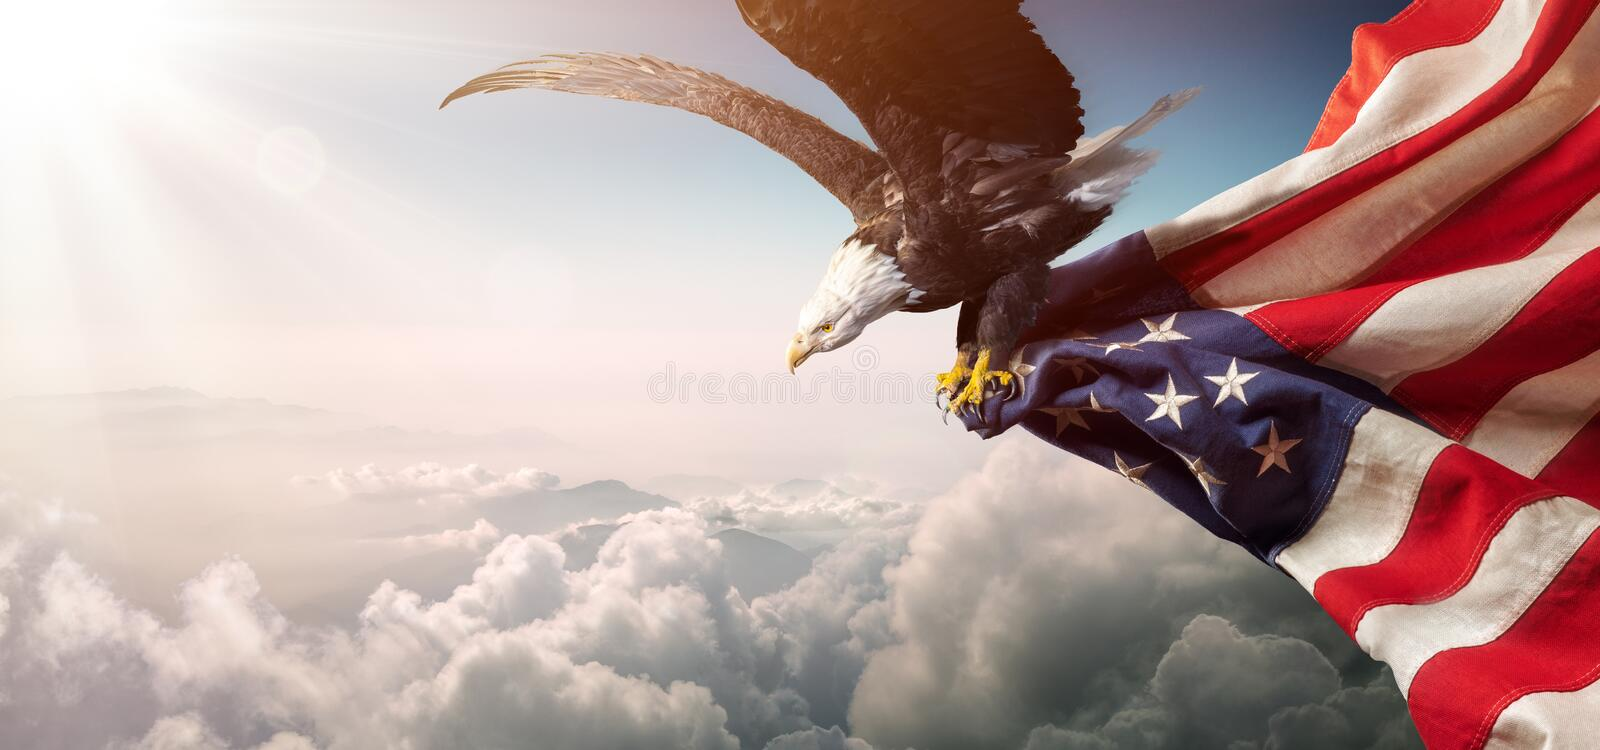 Eagle With American Flag Flies fotos de stock royalty free